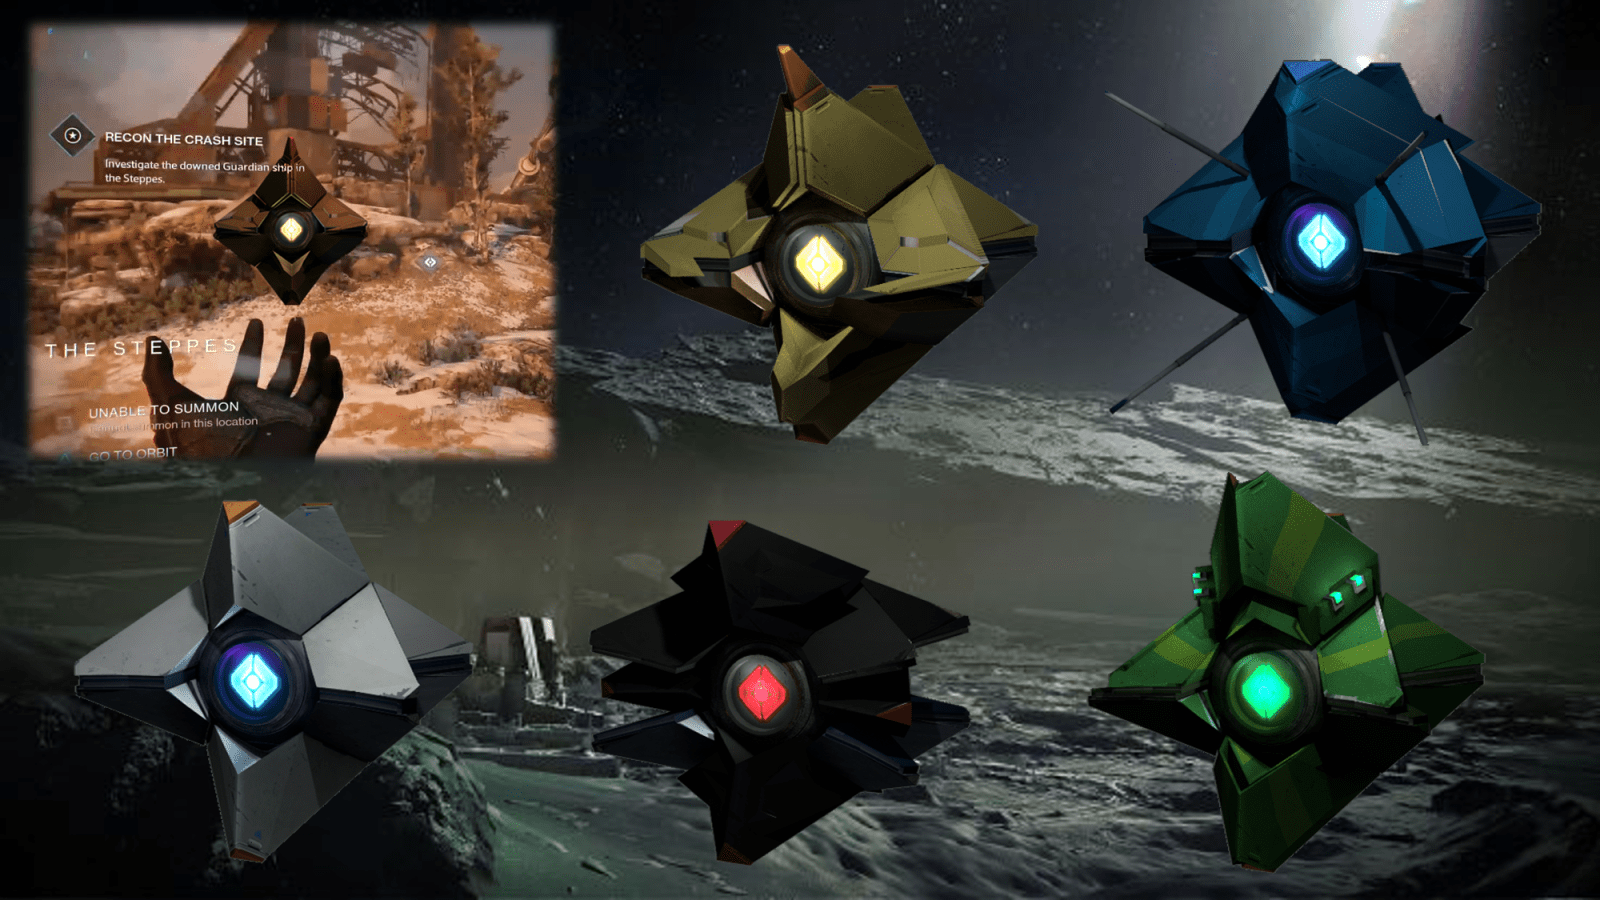 You can see actual destiny ghost shells in our database